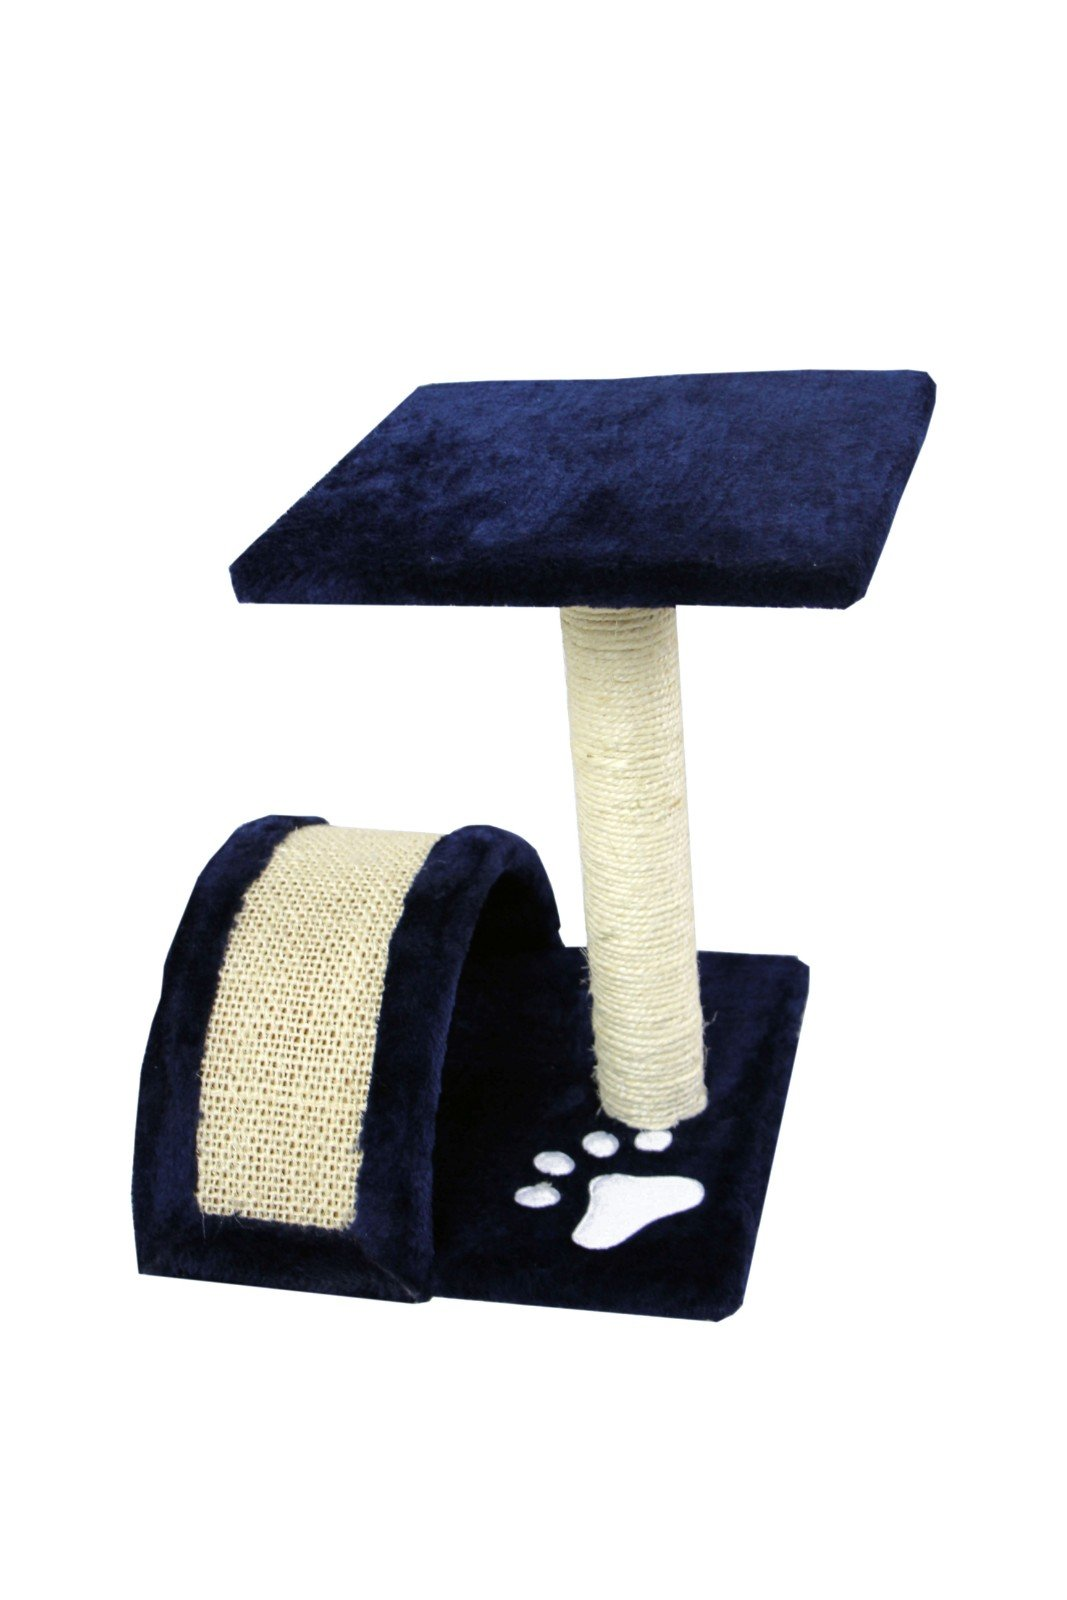 CloudWorks 15'' Small Cat Tree Sisal Scratching Post Furniture Playhouse Pet Bed Kitten Toy Cat Tower Condo for Kittens (Navy Blue) by HIDING by CloudWorks Cat (Image #4)